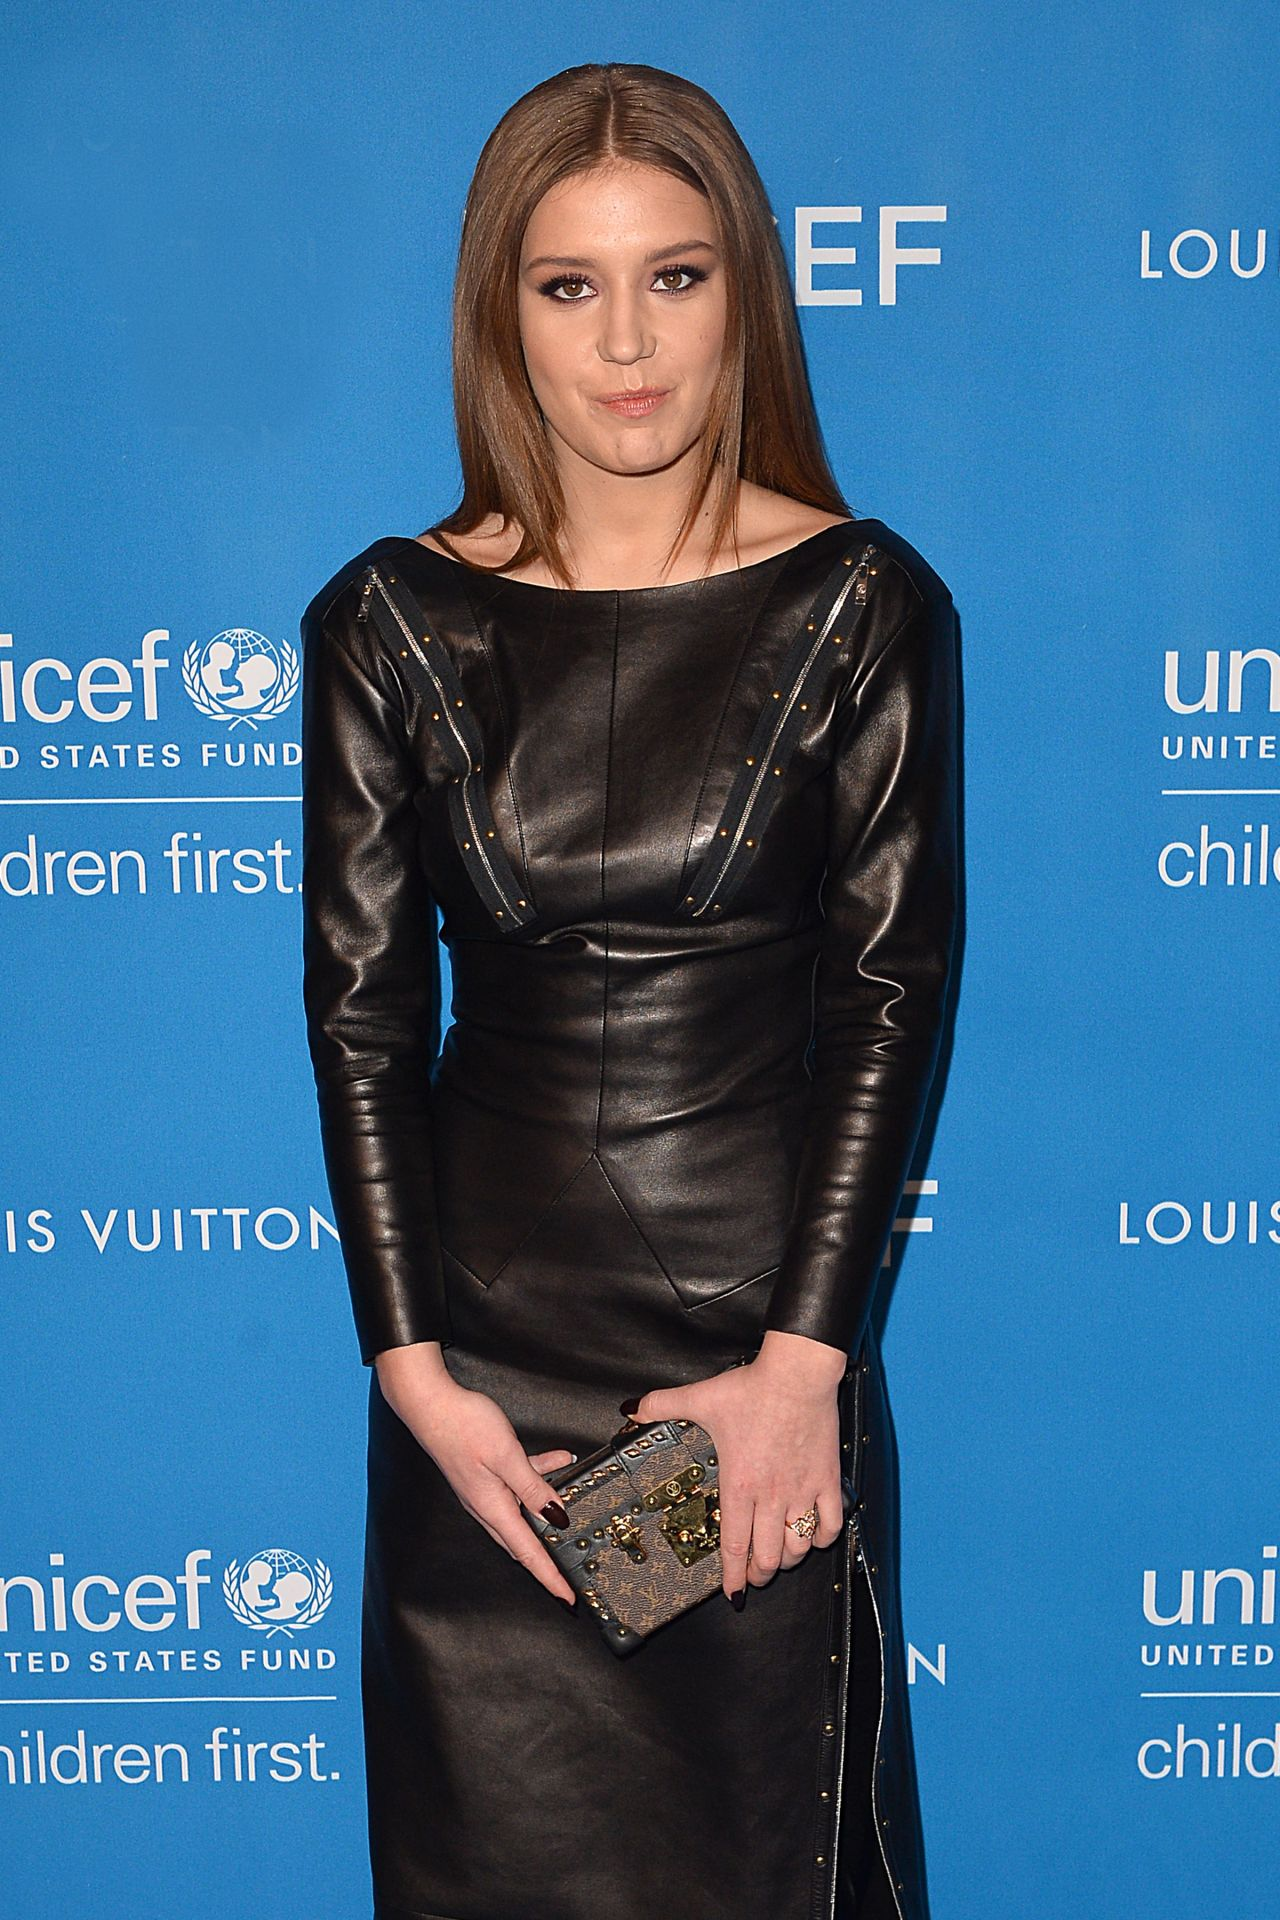 adèle-exarchopoulos-6th-biennial-unicef-ball-in-beverly-hills-1-12-2016-3